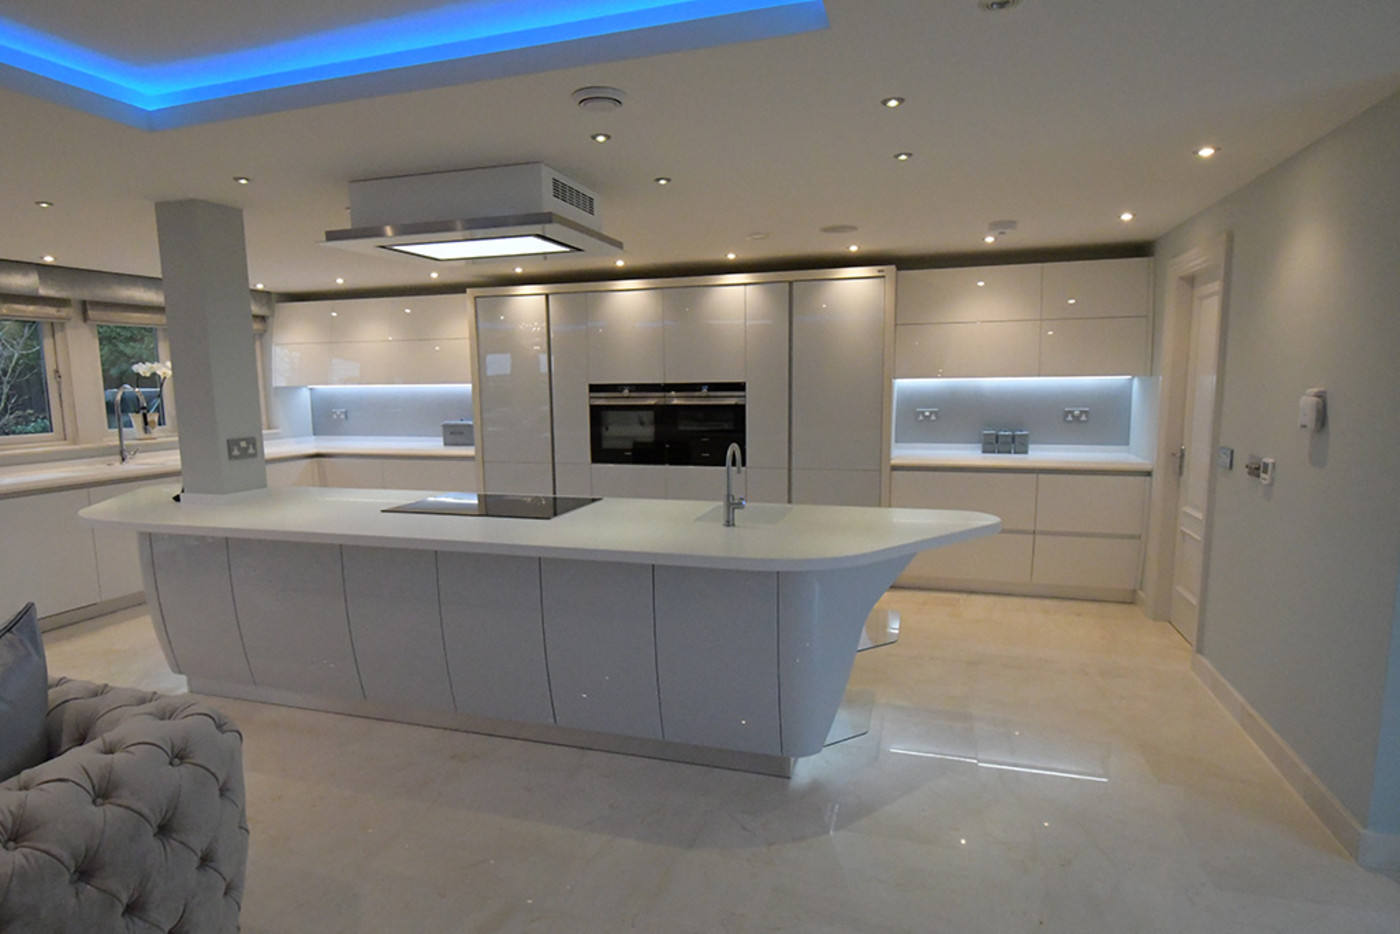 Services - Kitchens